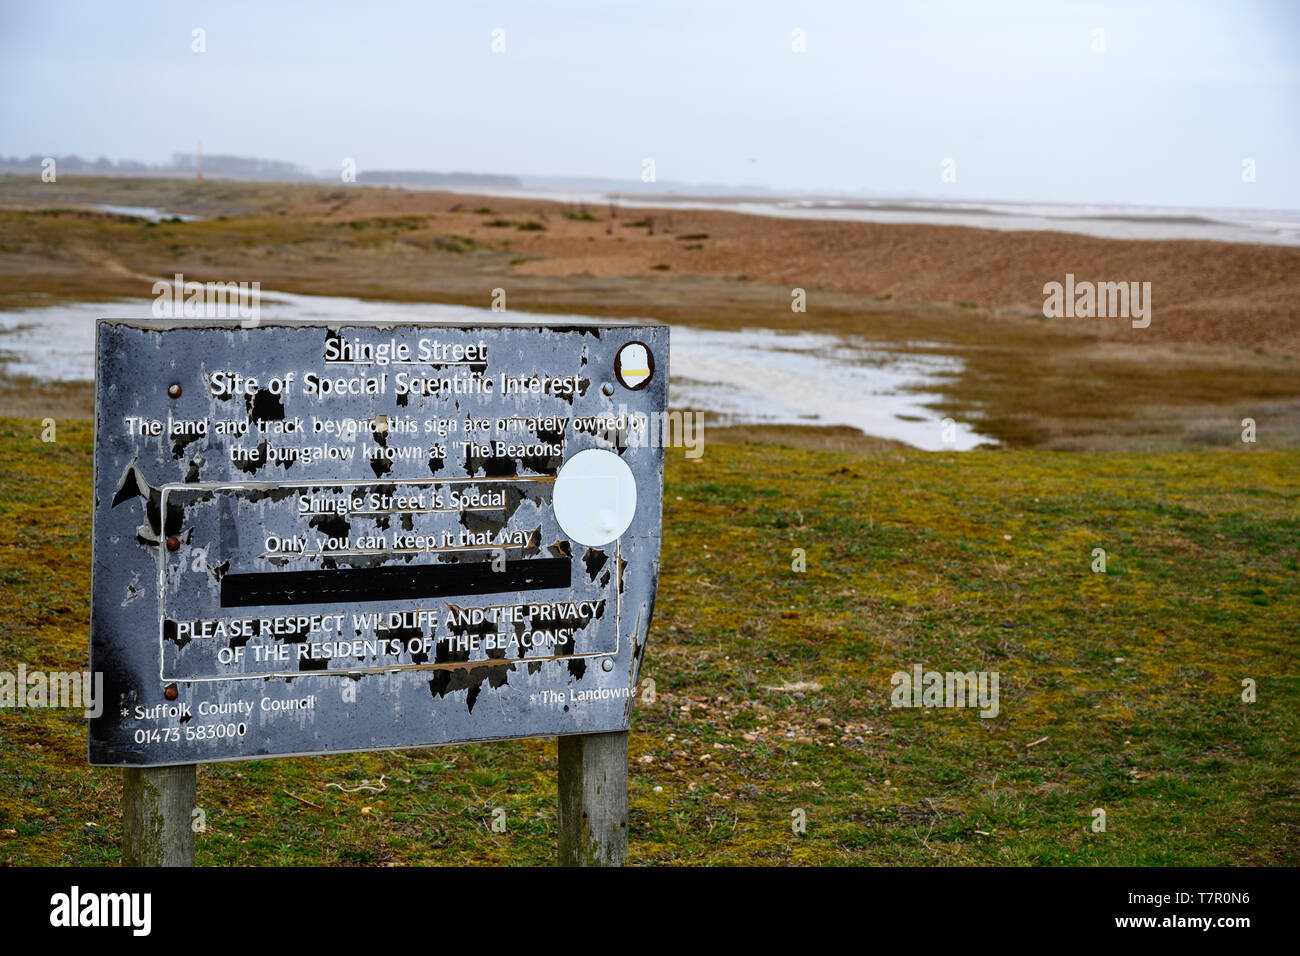 Shingle Street Site of special scientific interest - Stock Image